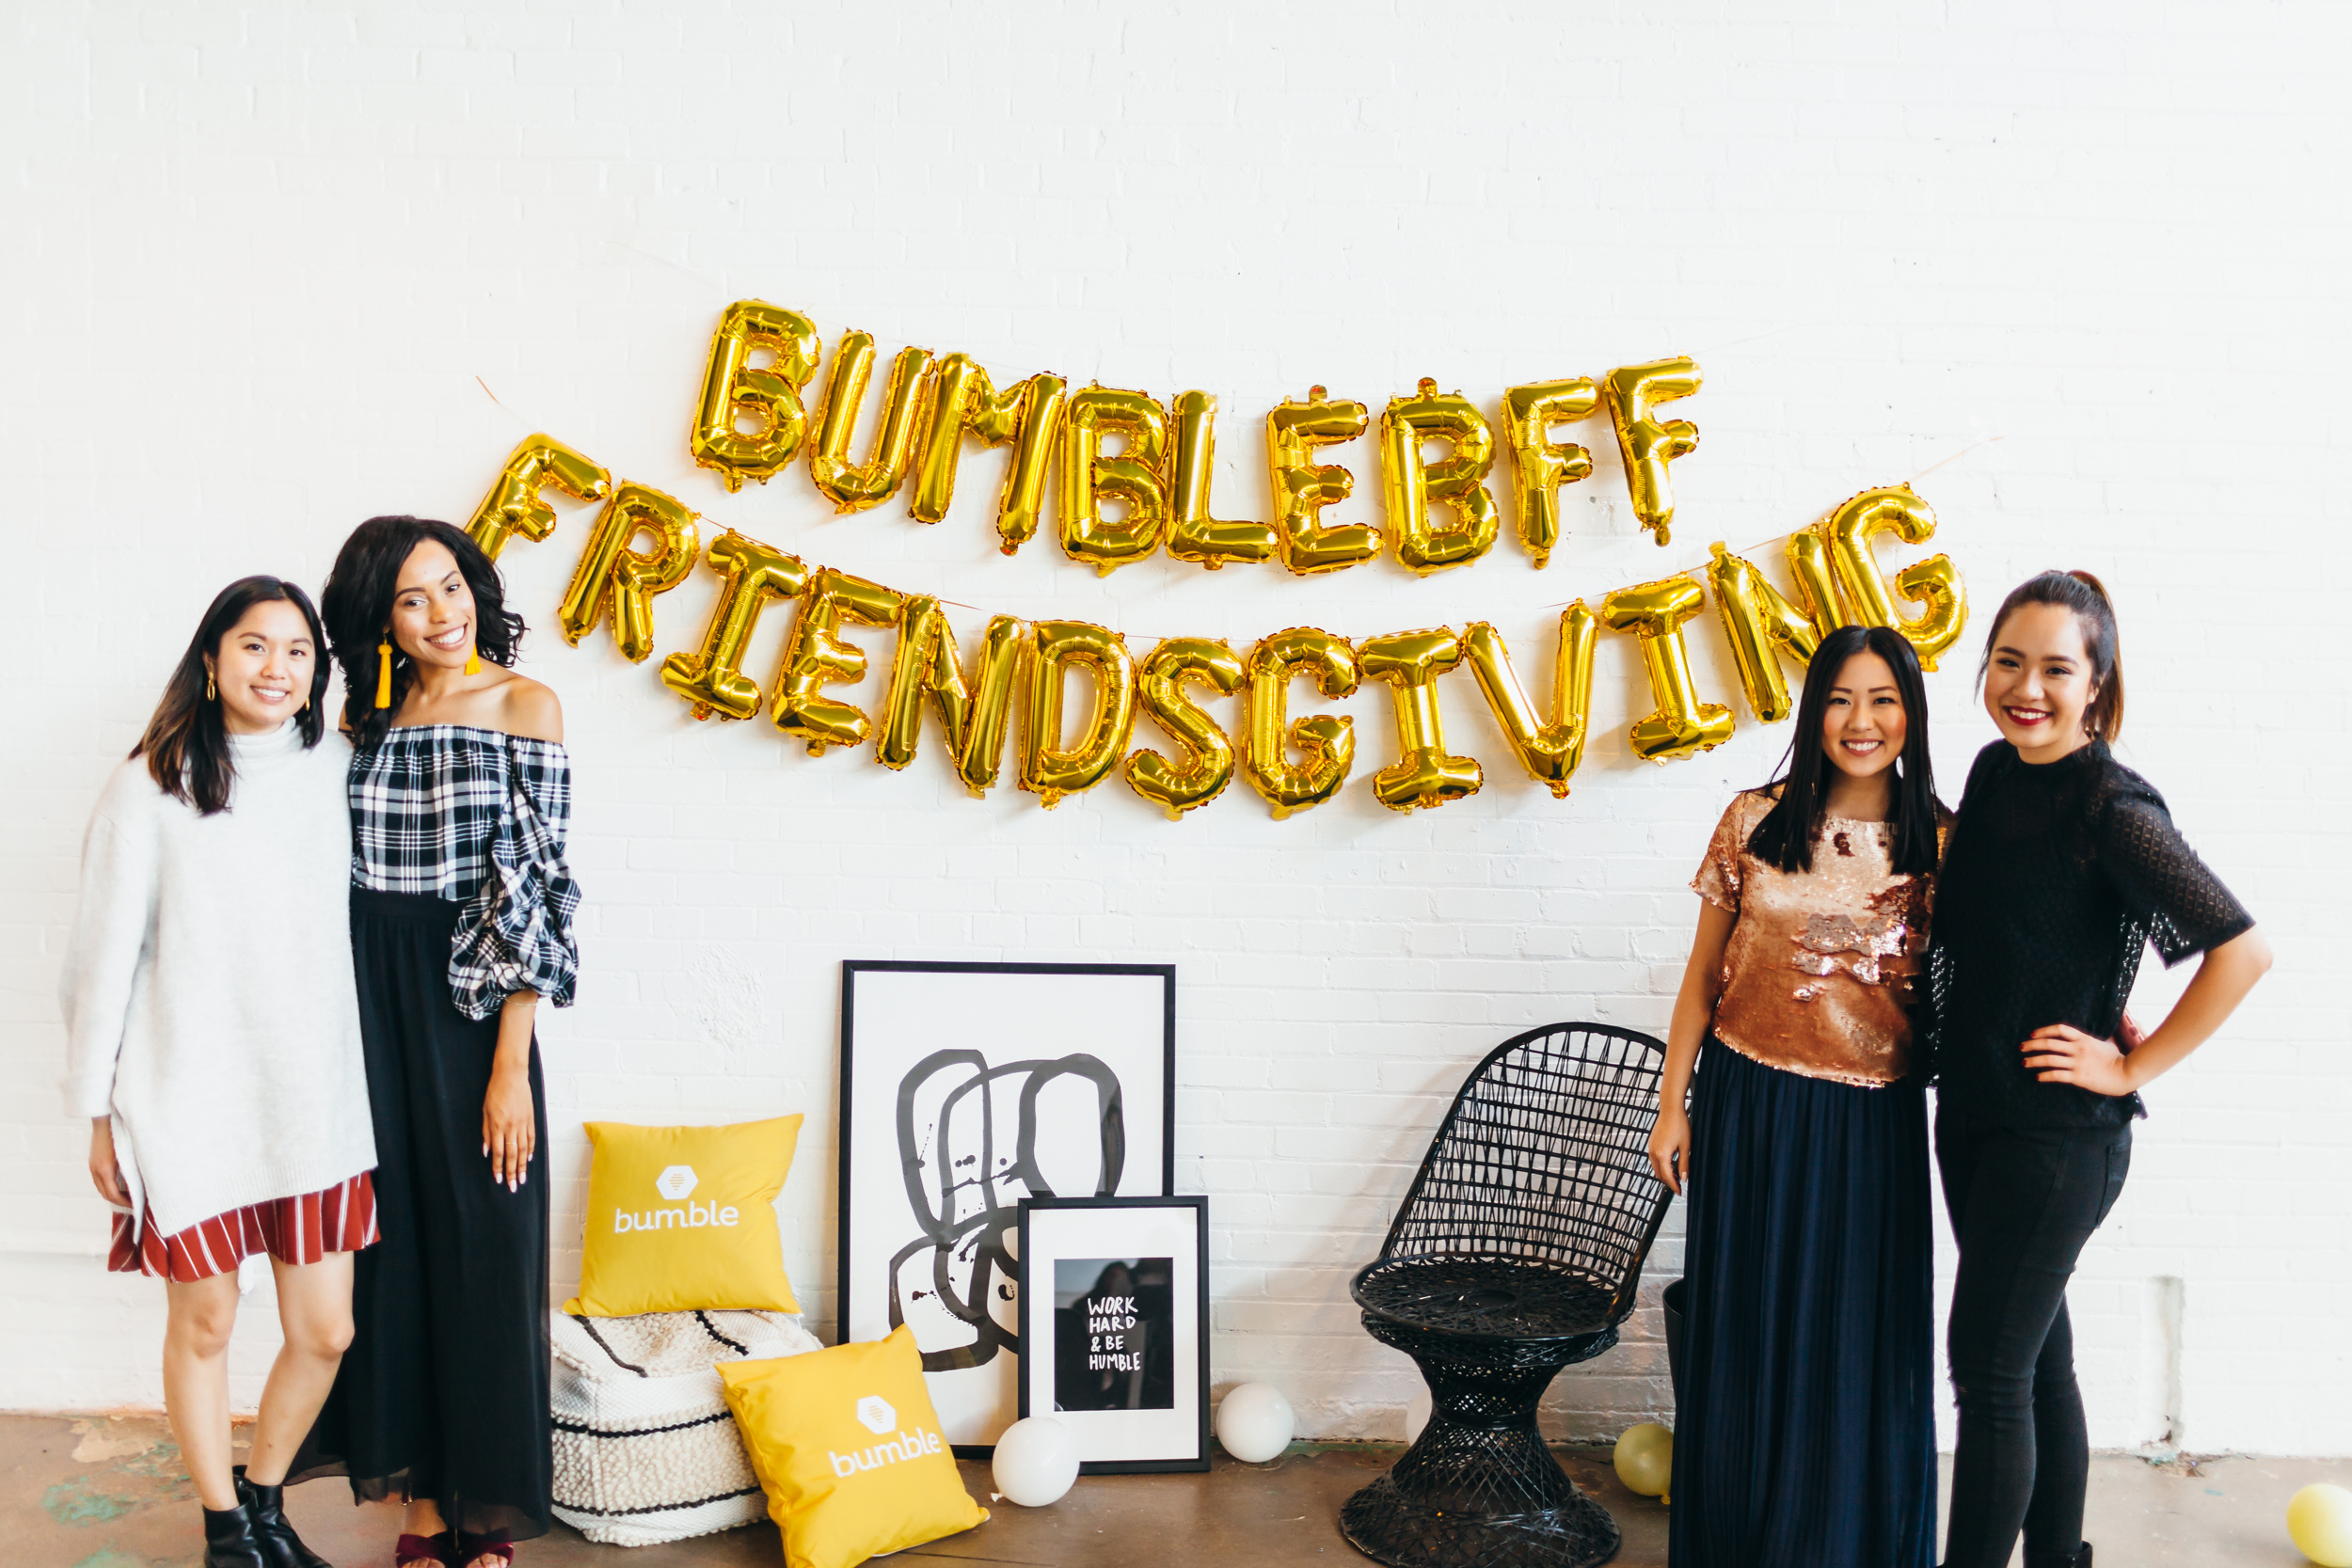 bumble-bff-friendsgiving-@sheinthemaking-3204.jpg